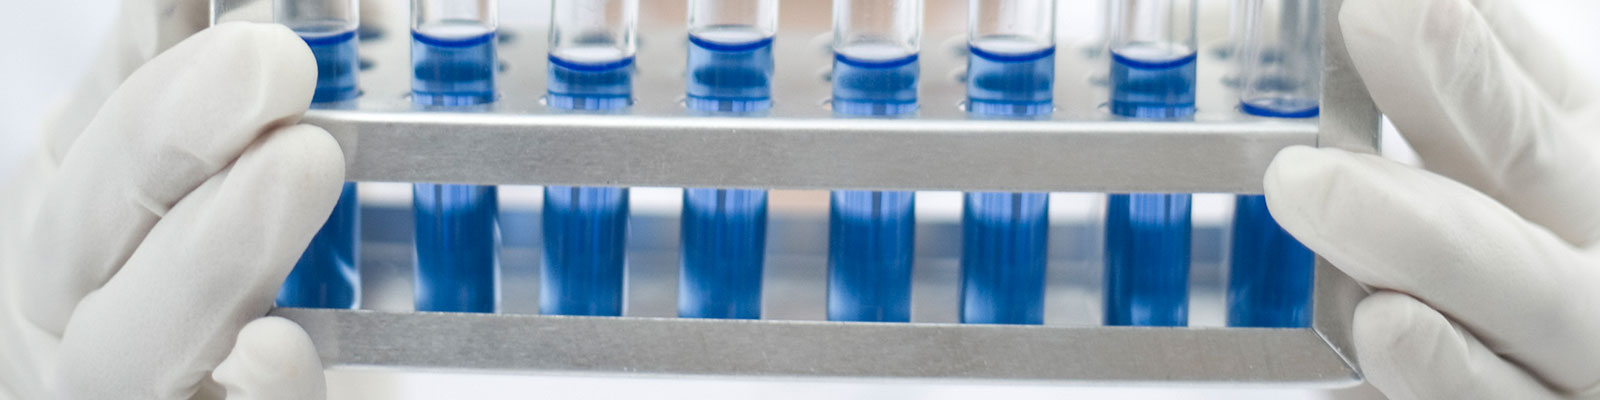 gloved hands holding a rack of test tubes with blue liquid